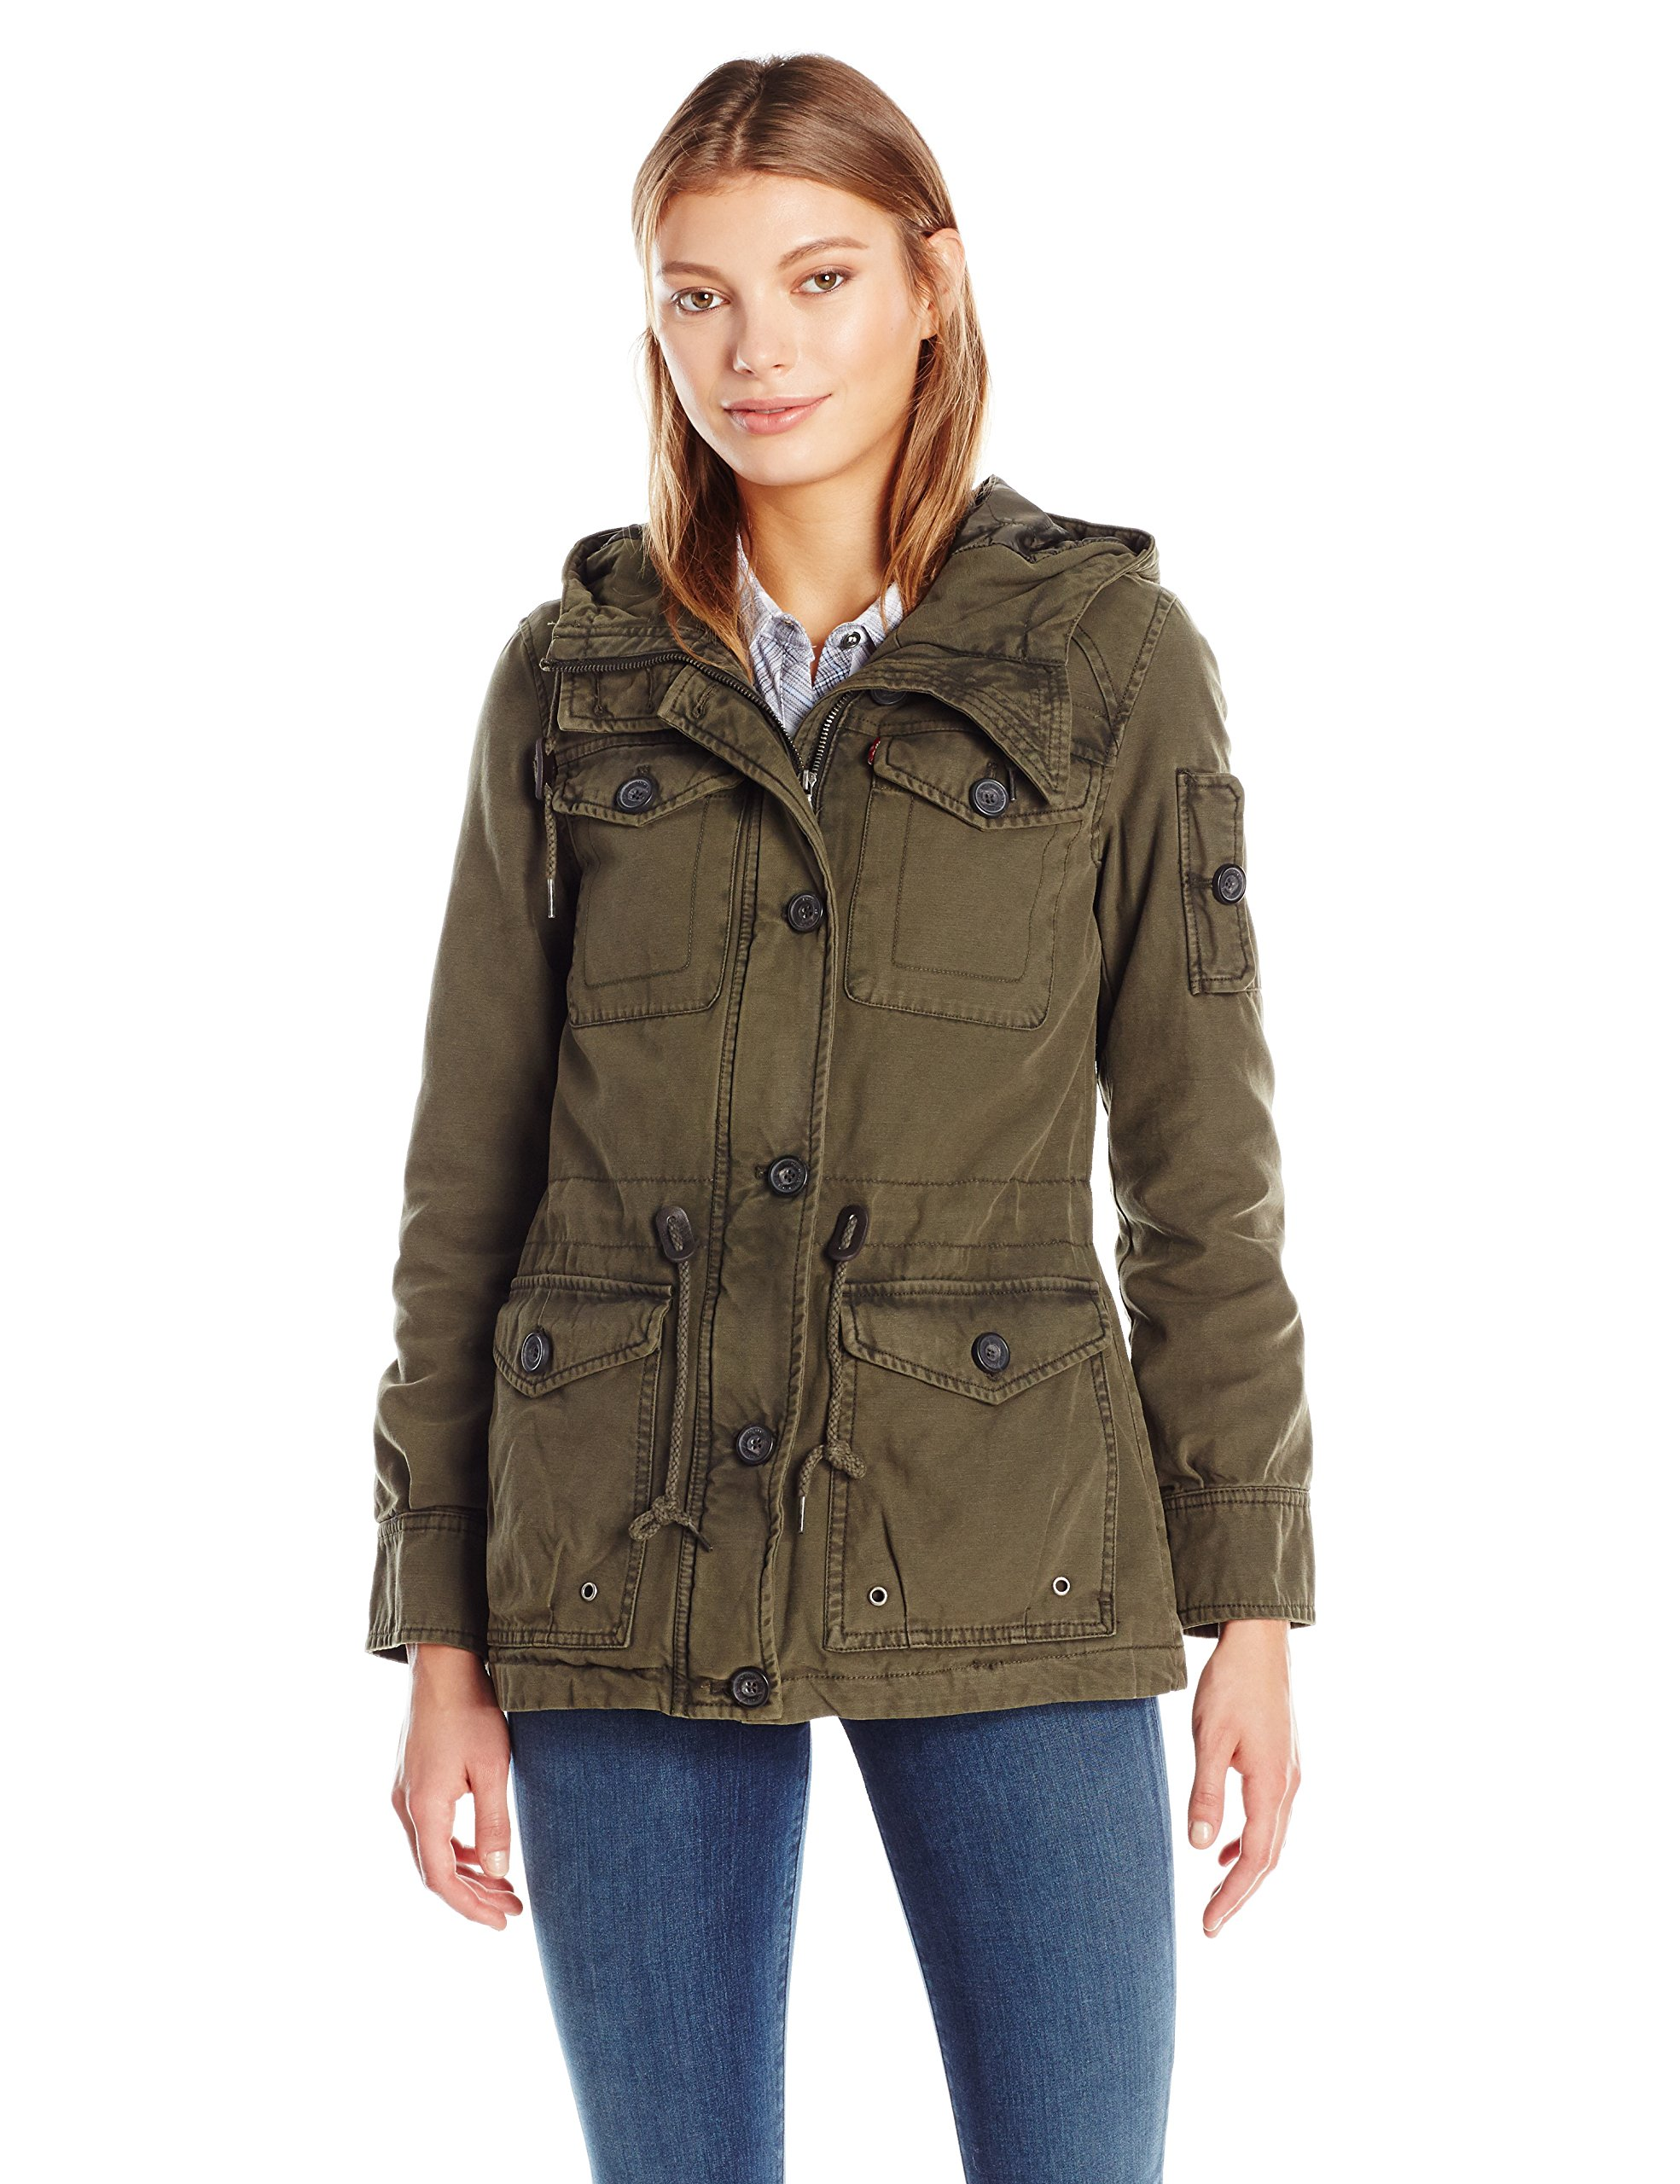 Levi's Women's Cotton Four Pocket Hooded Field Jacket, Army Green, S by Levi's